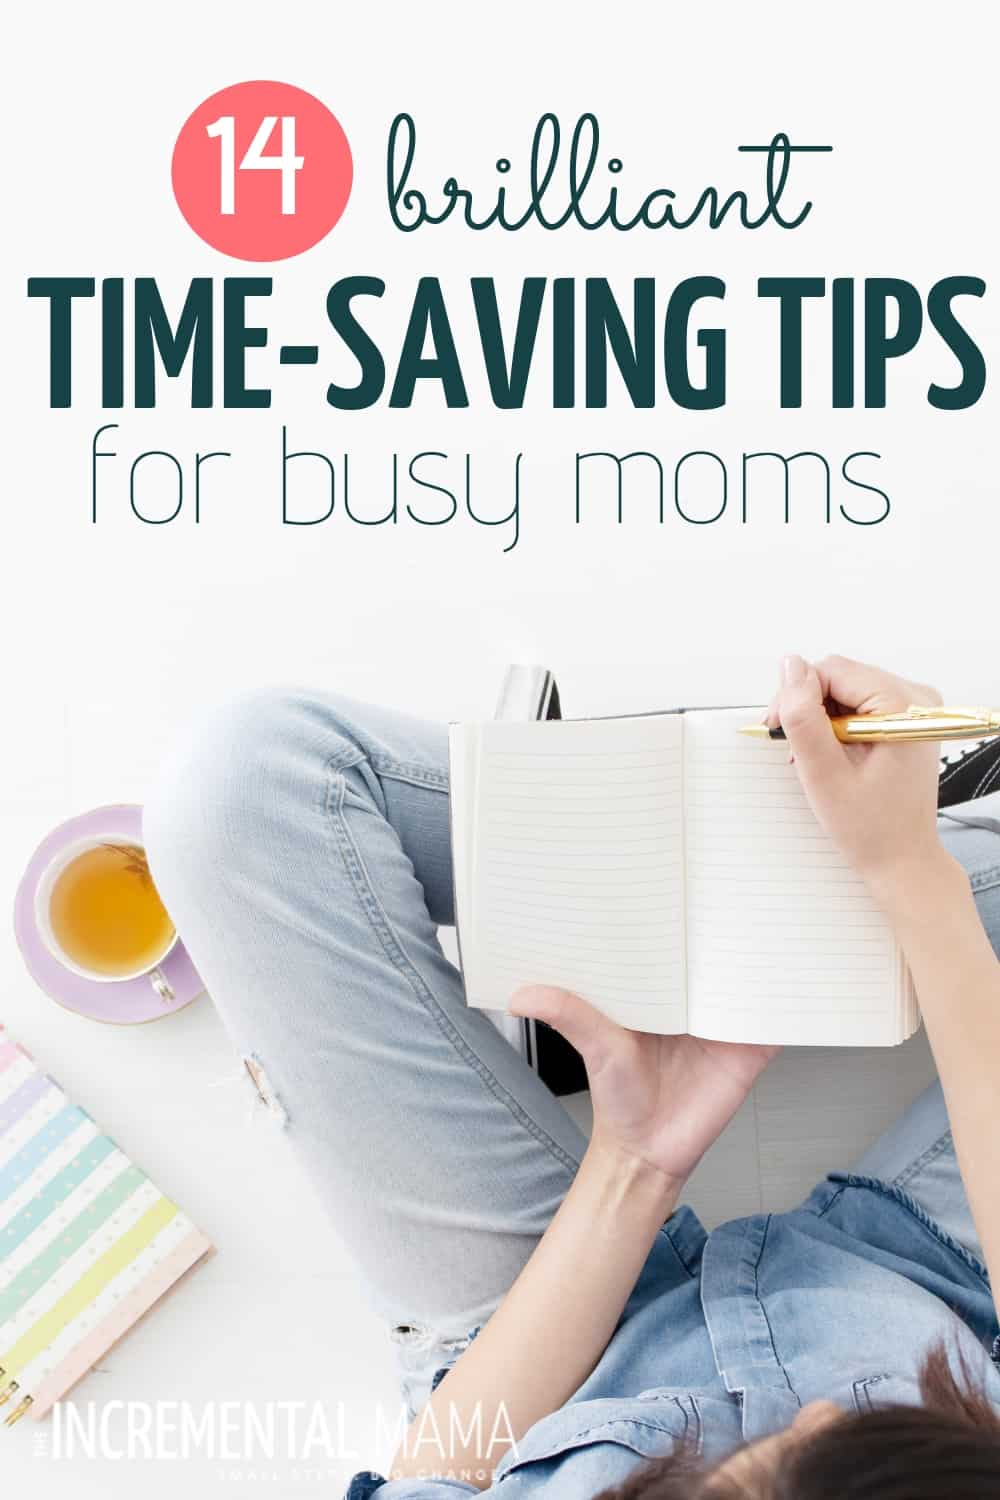 These 14 time-saving tips for moms will help even the most overwhelmed moms create routines that make life easier & happier. #timemanagementtipsformoms #timesavingtips